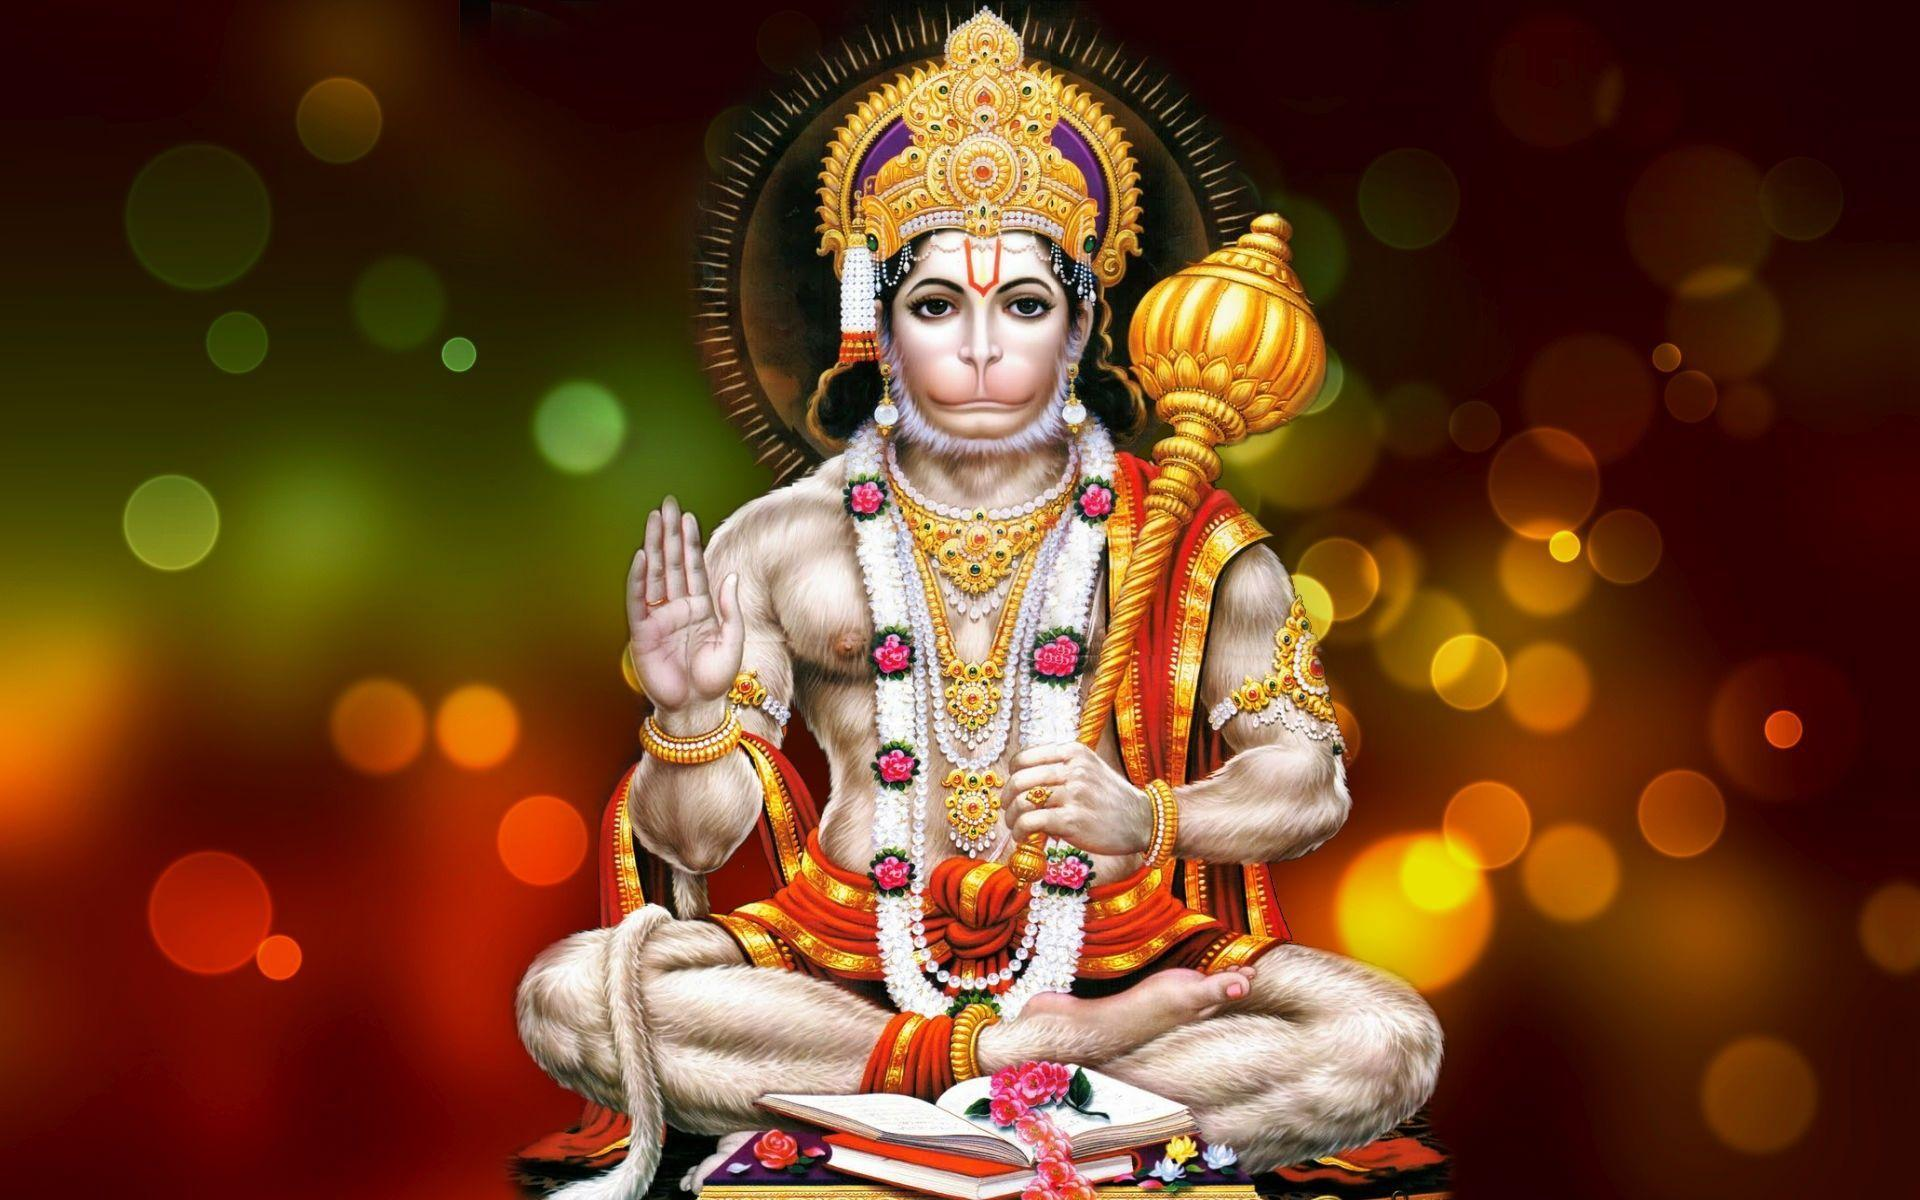 Free download desktop Hanuman Ji Wallpaper & images